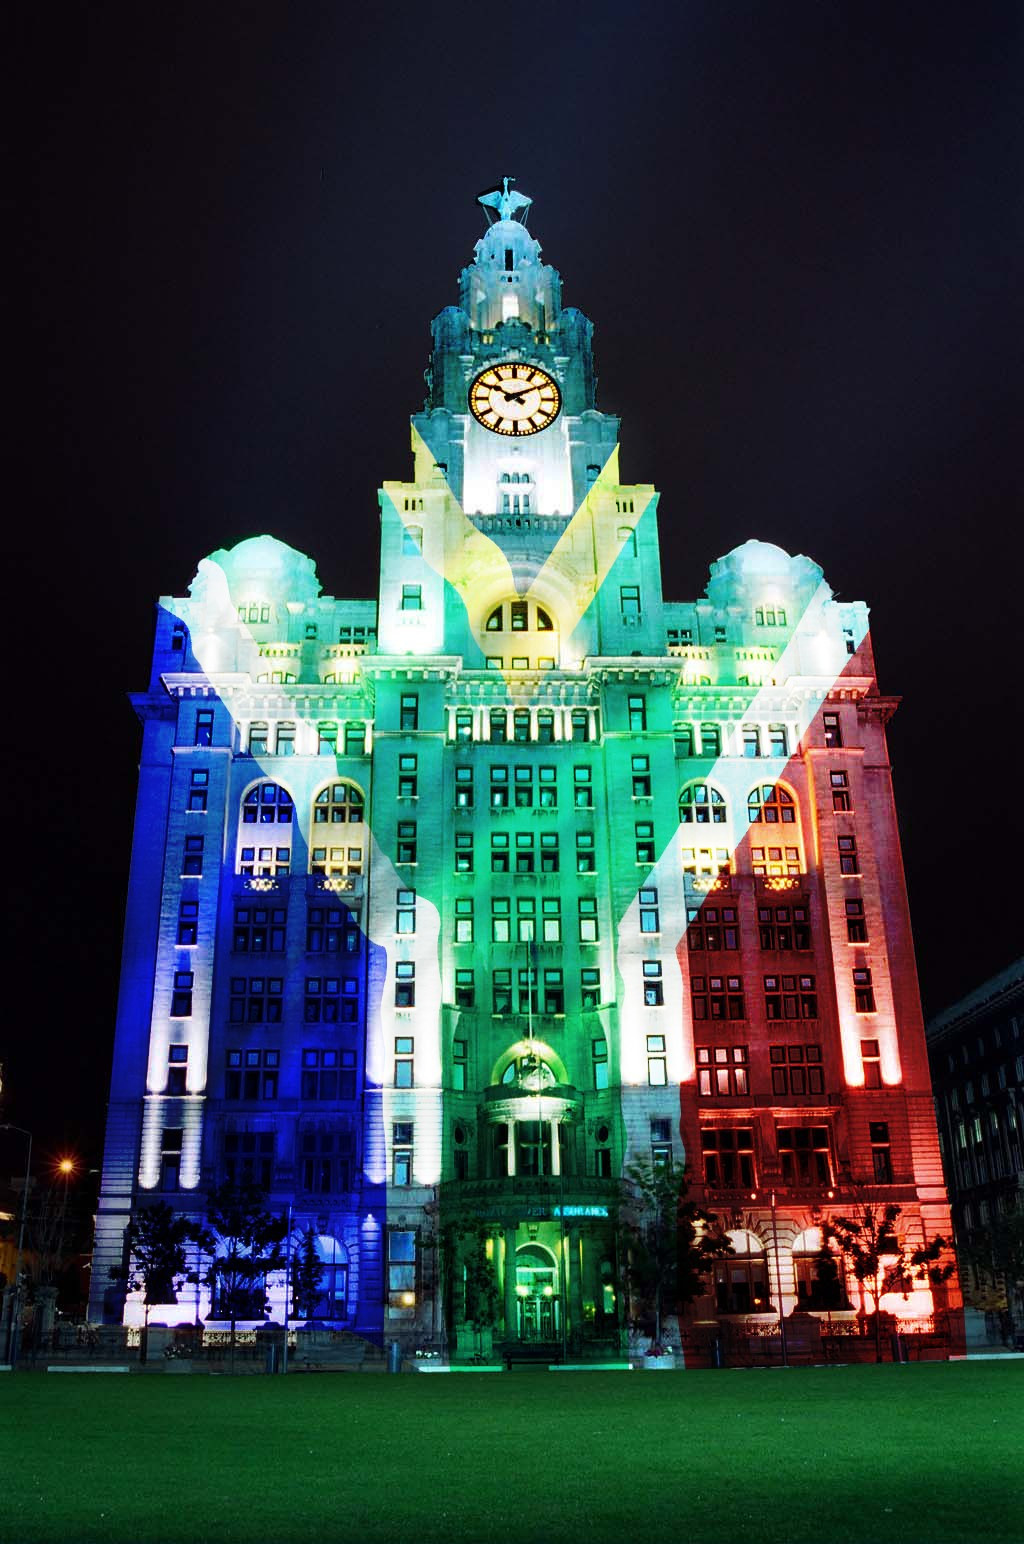 Cultural embassies for each country could be lit up at night ©Liverpool 2022